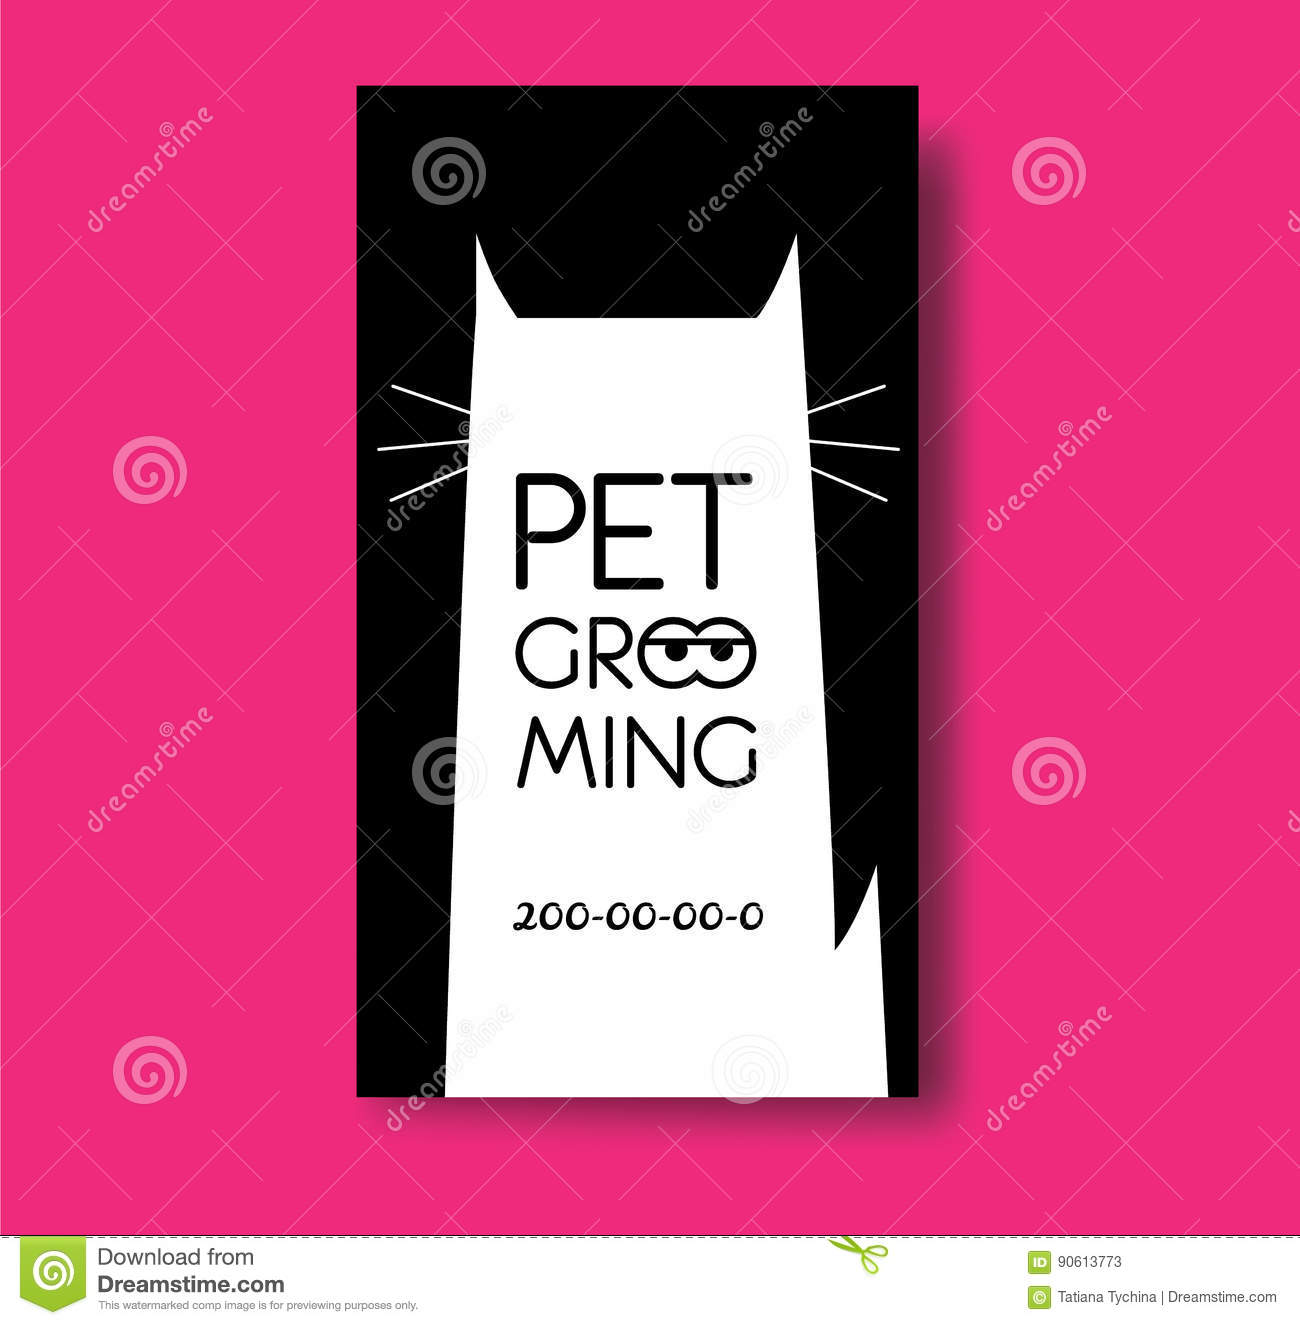 pet grooming business card design template with cat silhouette